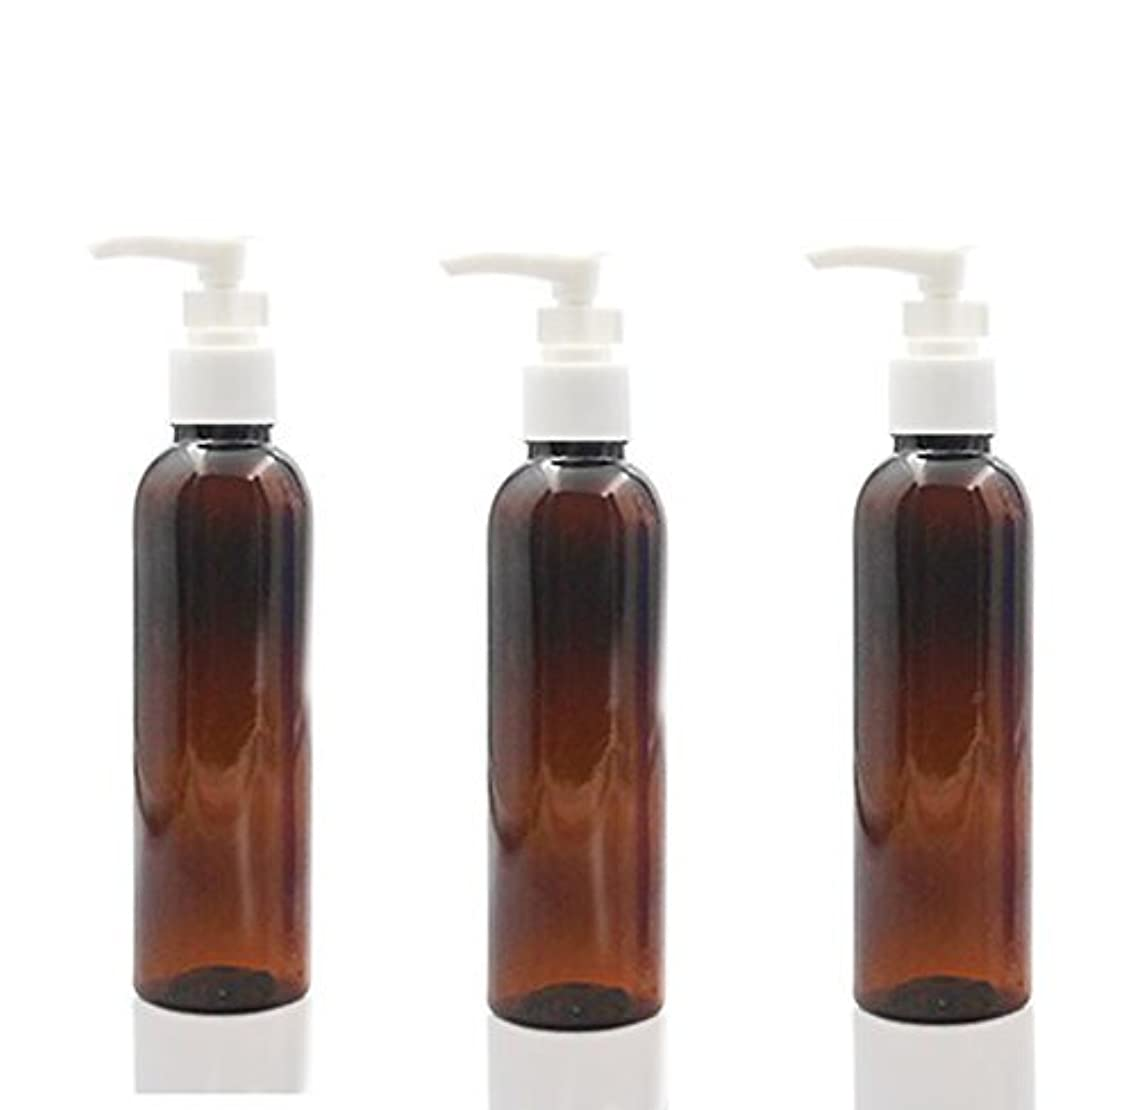 空中クラブ不正直3PCS 150ml Plastic Round Pump Bottles for Cooking Sauces Essential Oils Lotions Liquid Soaps or Organic Beauty...